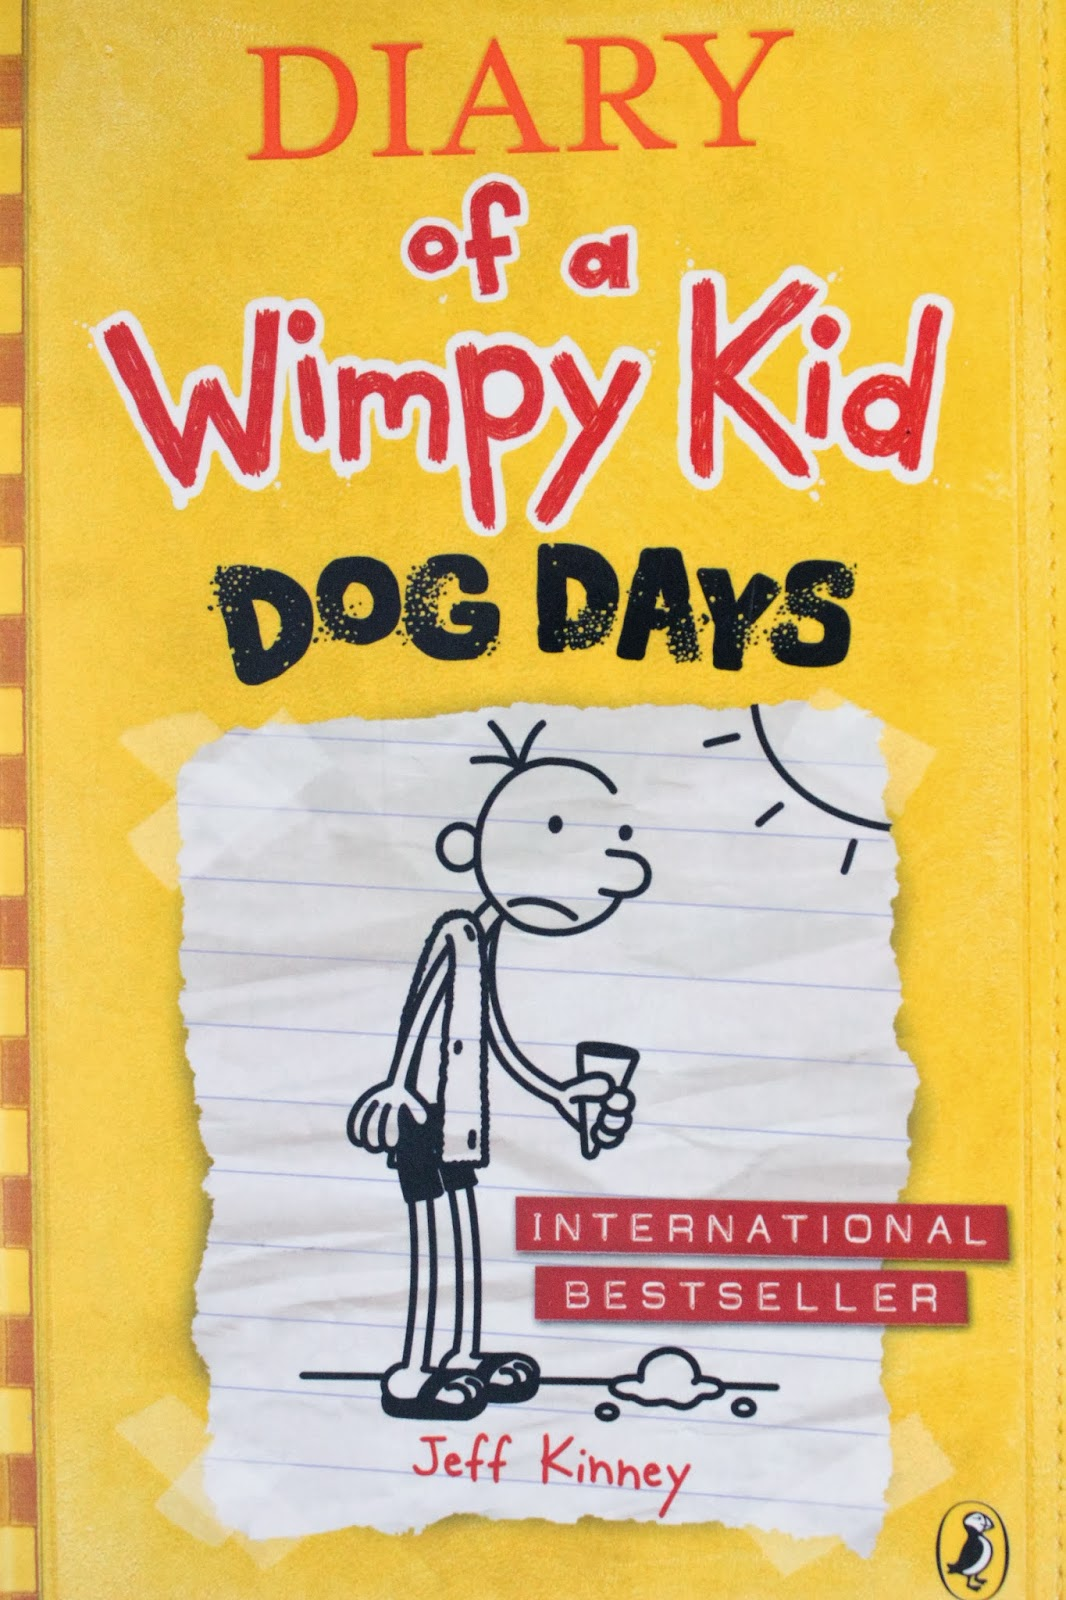 Facts About Diary Of A Wimpy Kid Dog Days